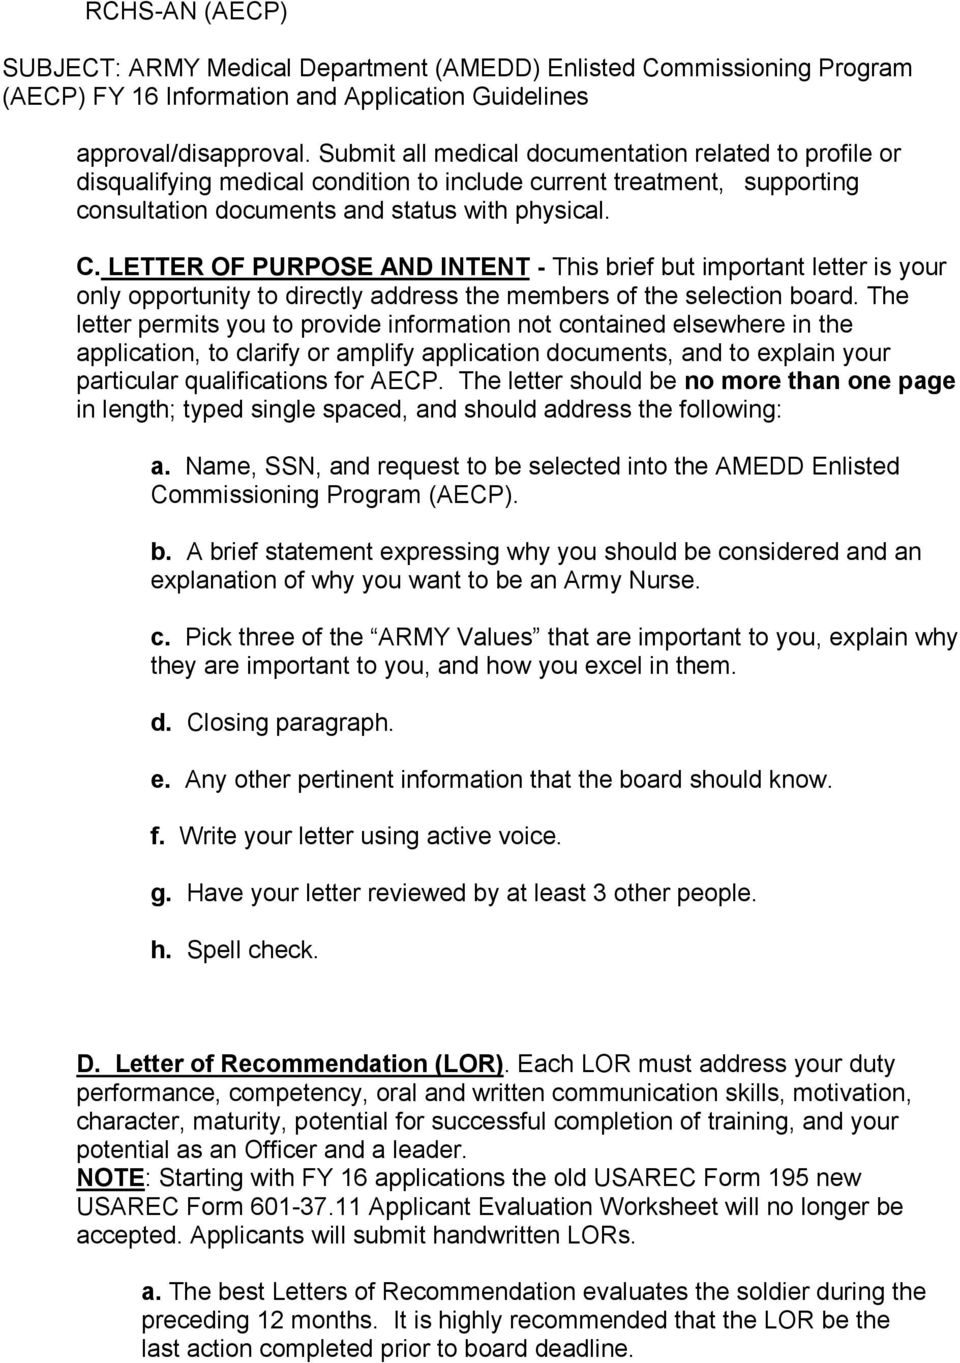 Amedd Enlisted Commissioning Program Guidelines For Army Enlisted